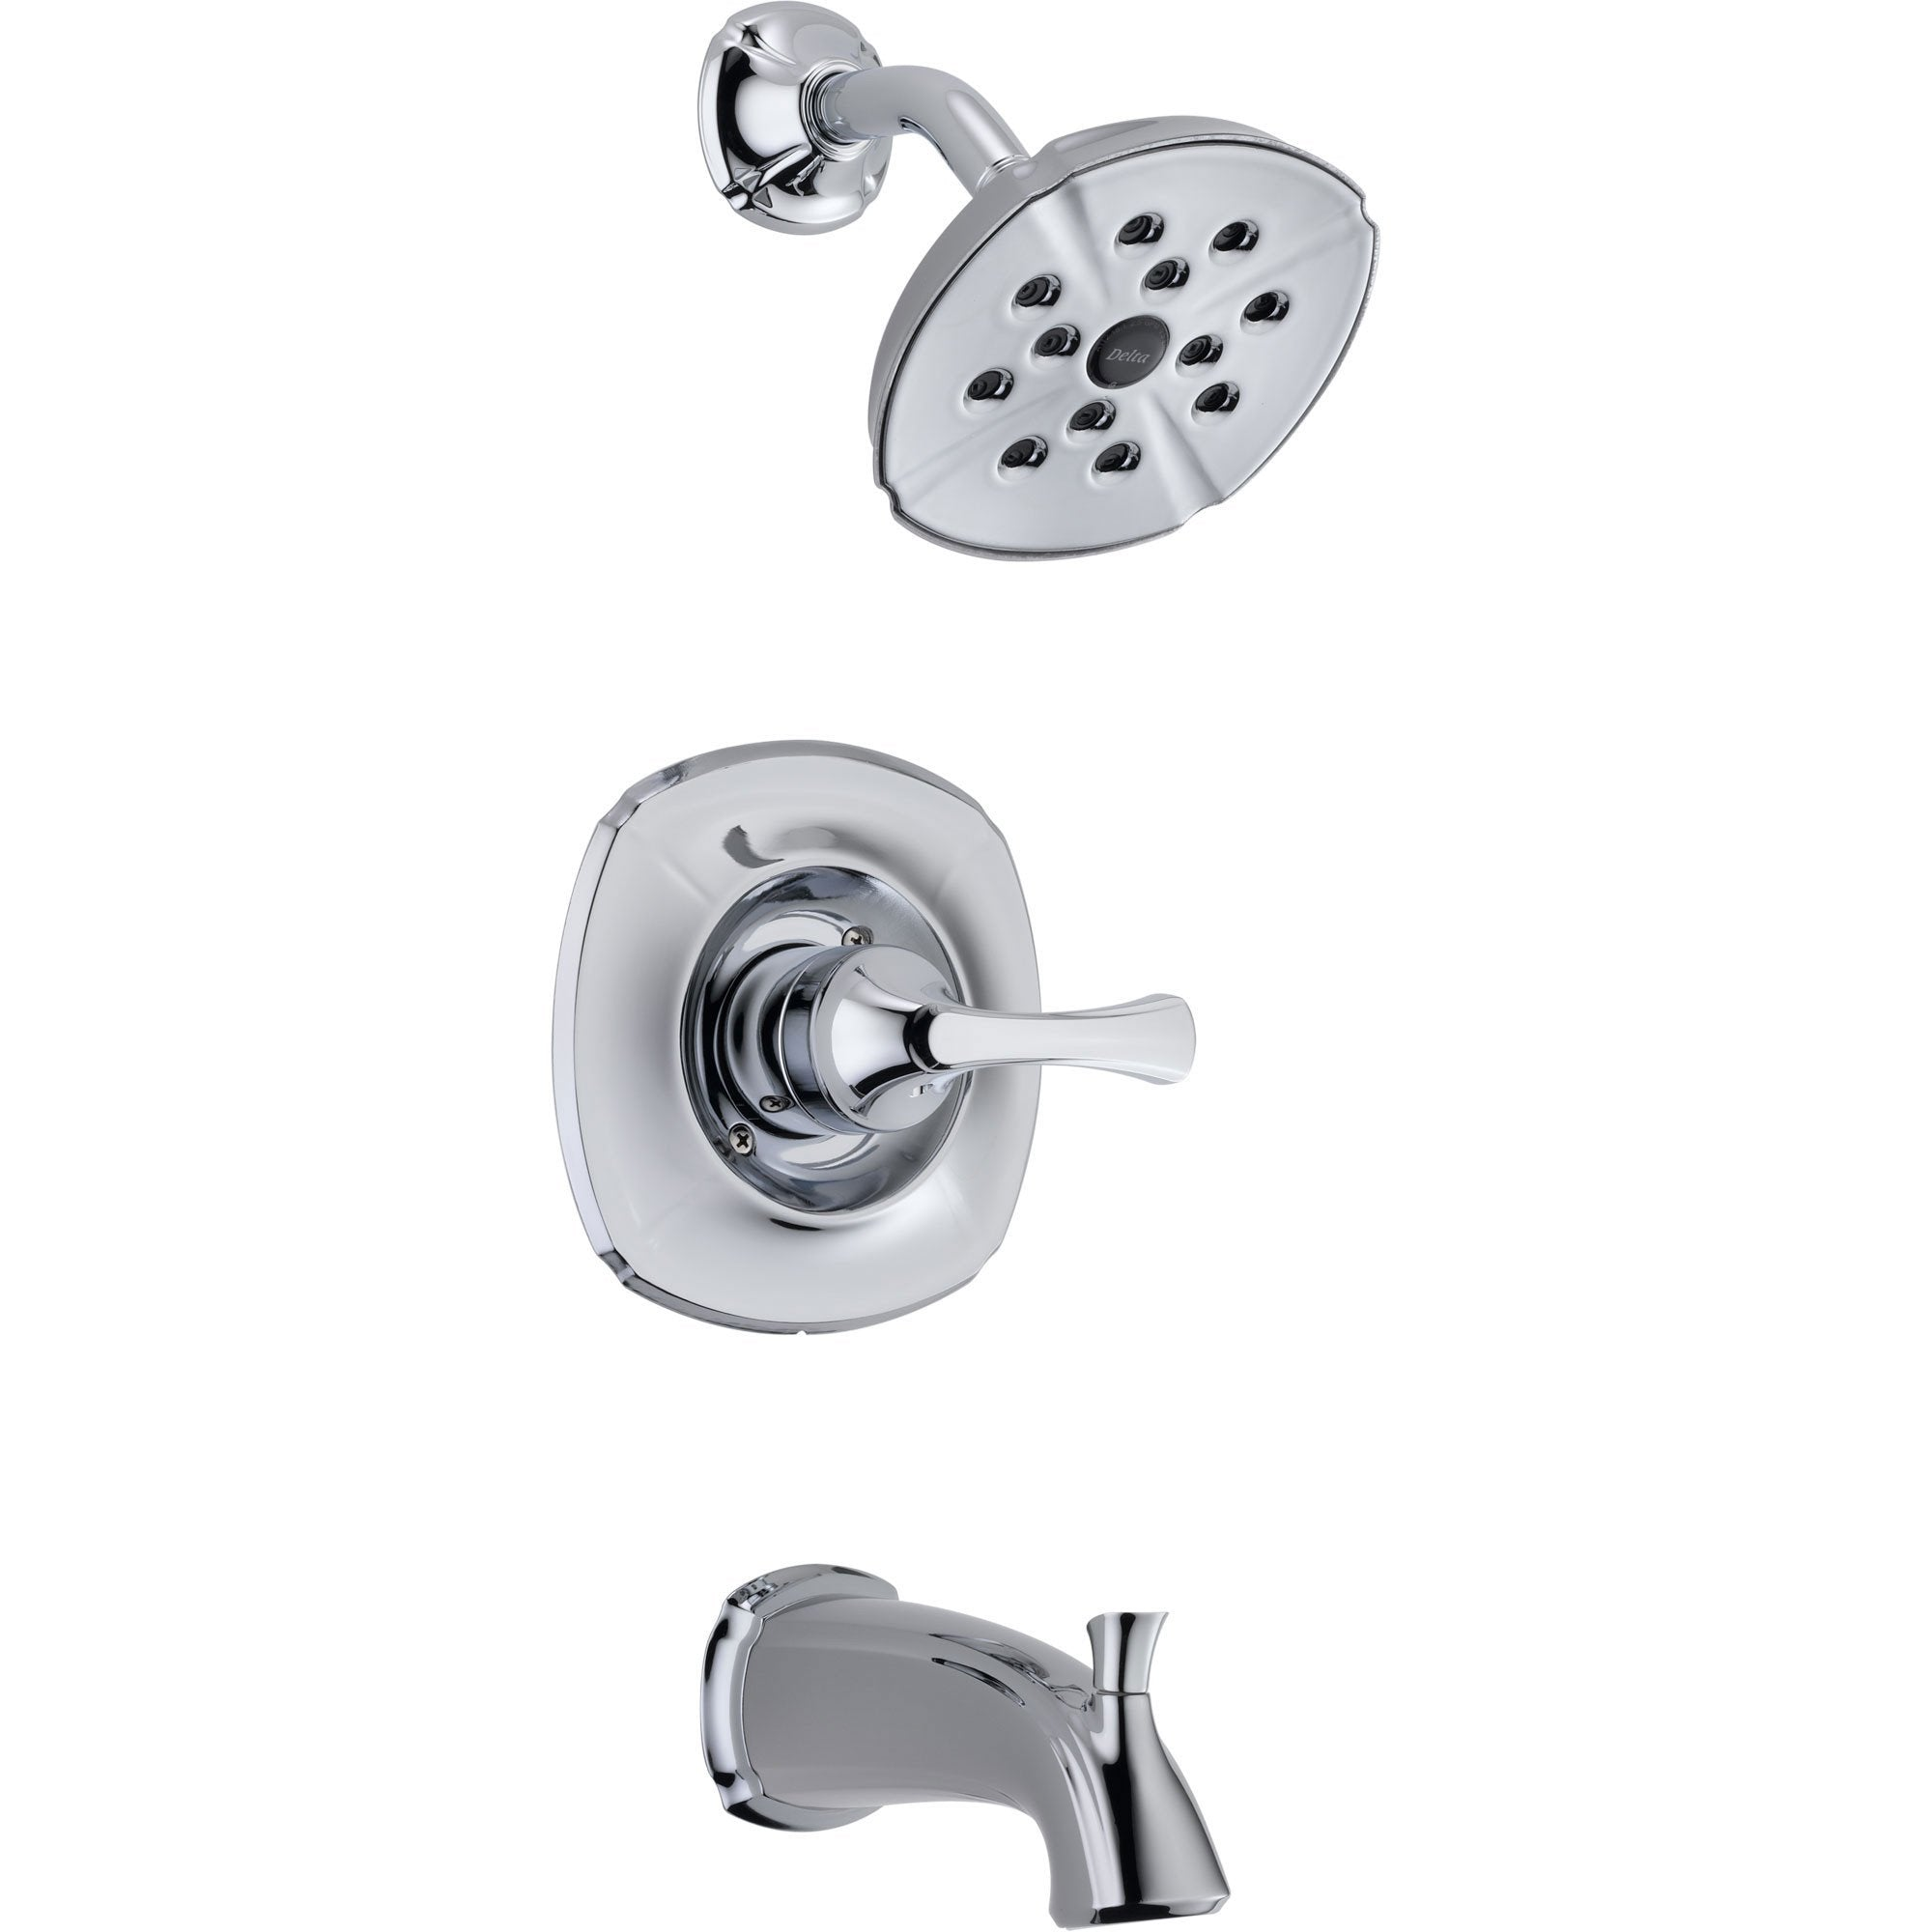 Delta Addison Modern Wall Mount Chrome Tub and Shower Faucet with Valve D271V